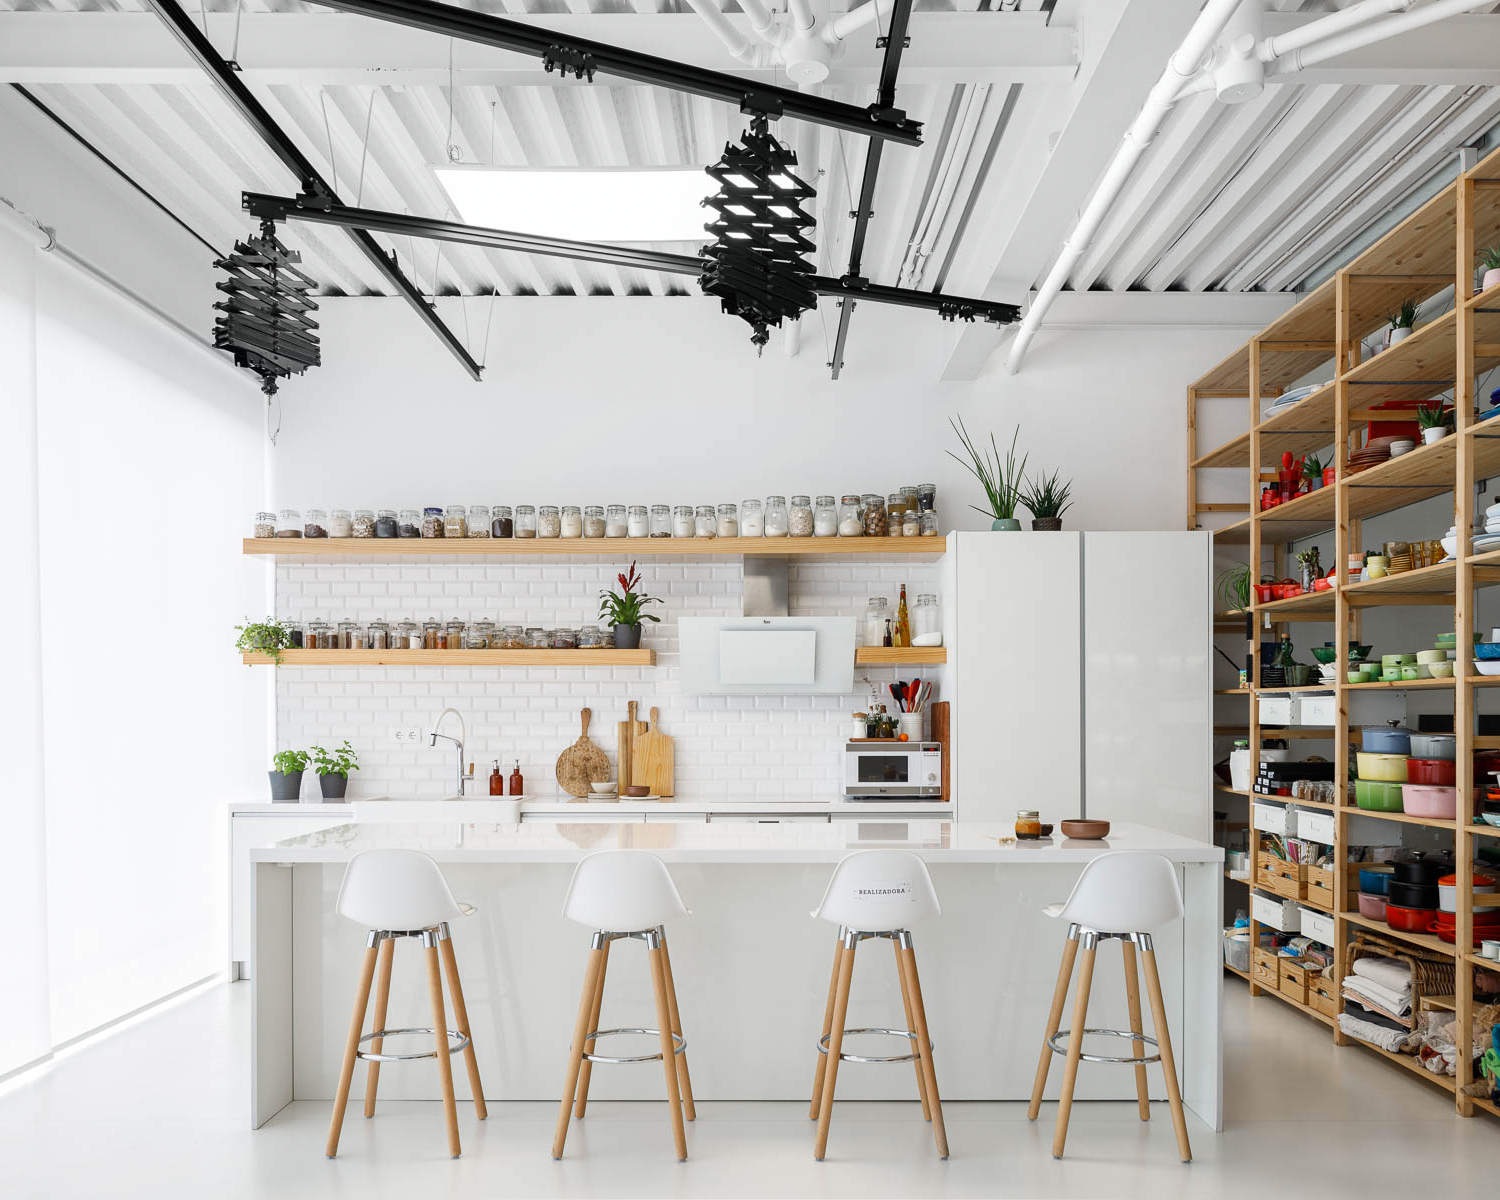 View of the kitchen with white counter stools, white cabinets, and wooden shelving housing colourful cookware